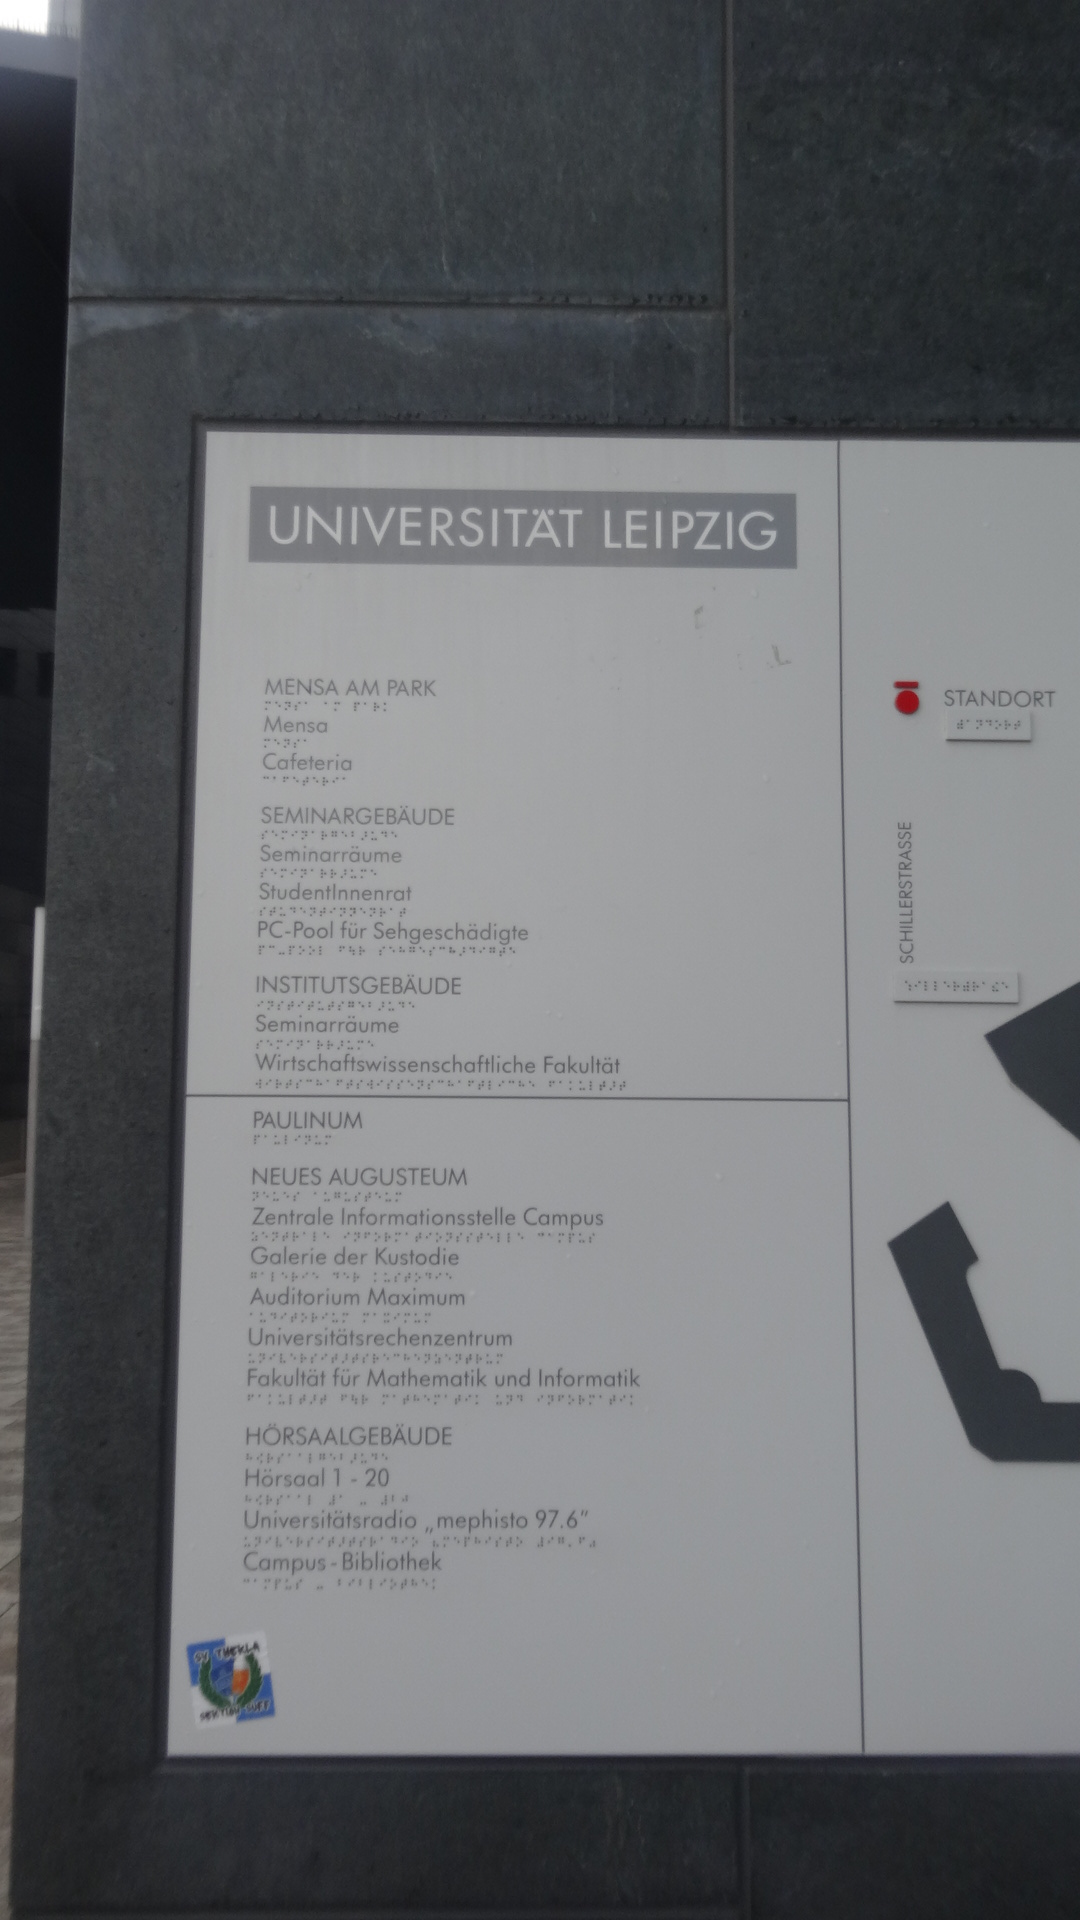 University Leipzig building plan legend